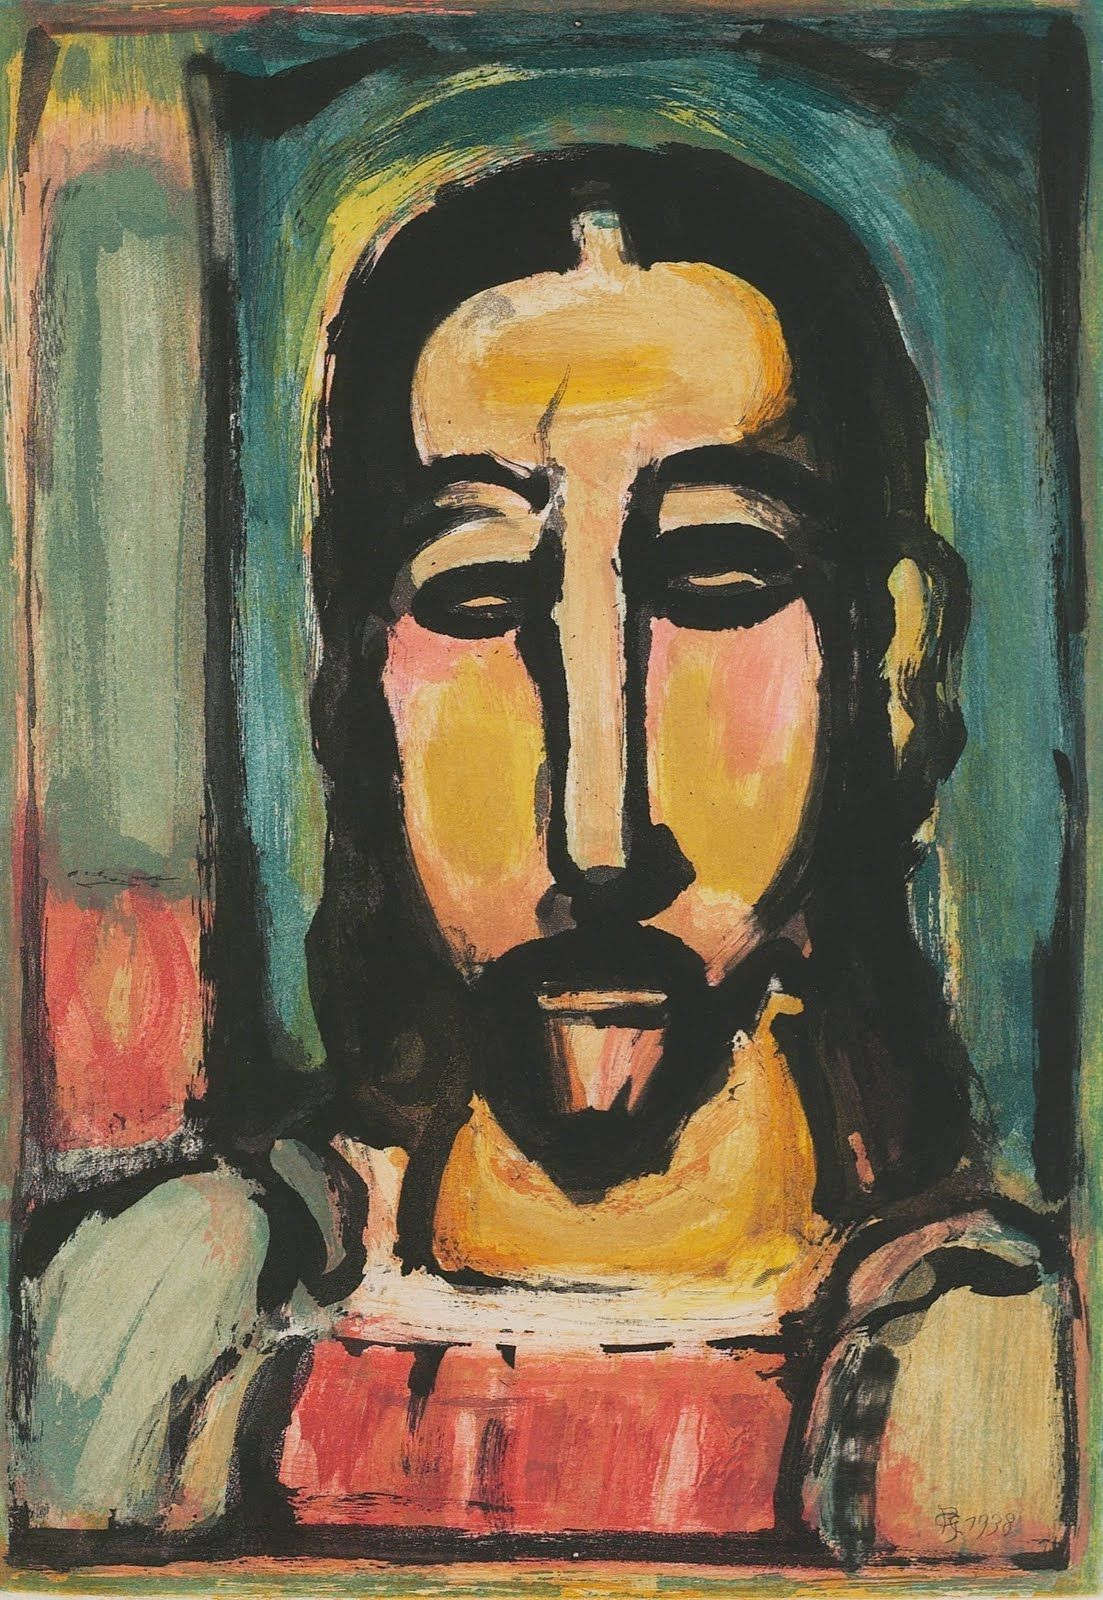 Georges Rouault Face-of-christ. Roualt Of Favorite Artists. Muse Paintings Art